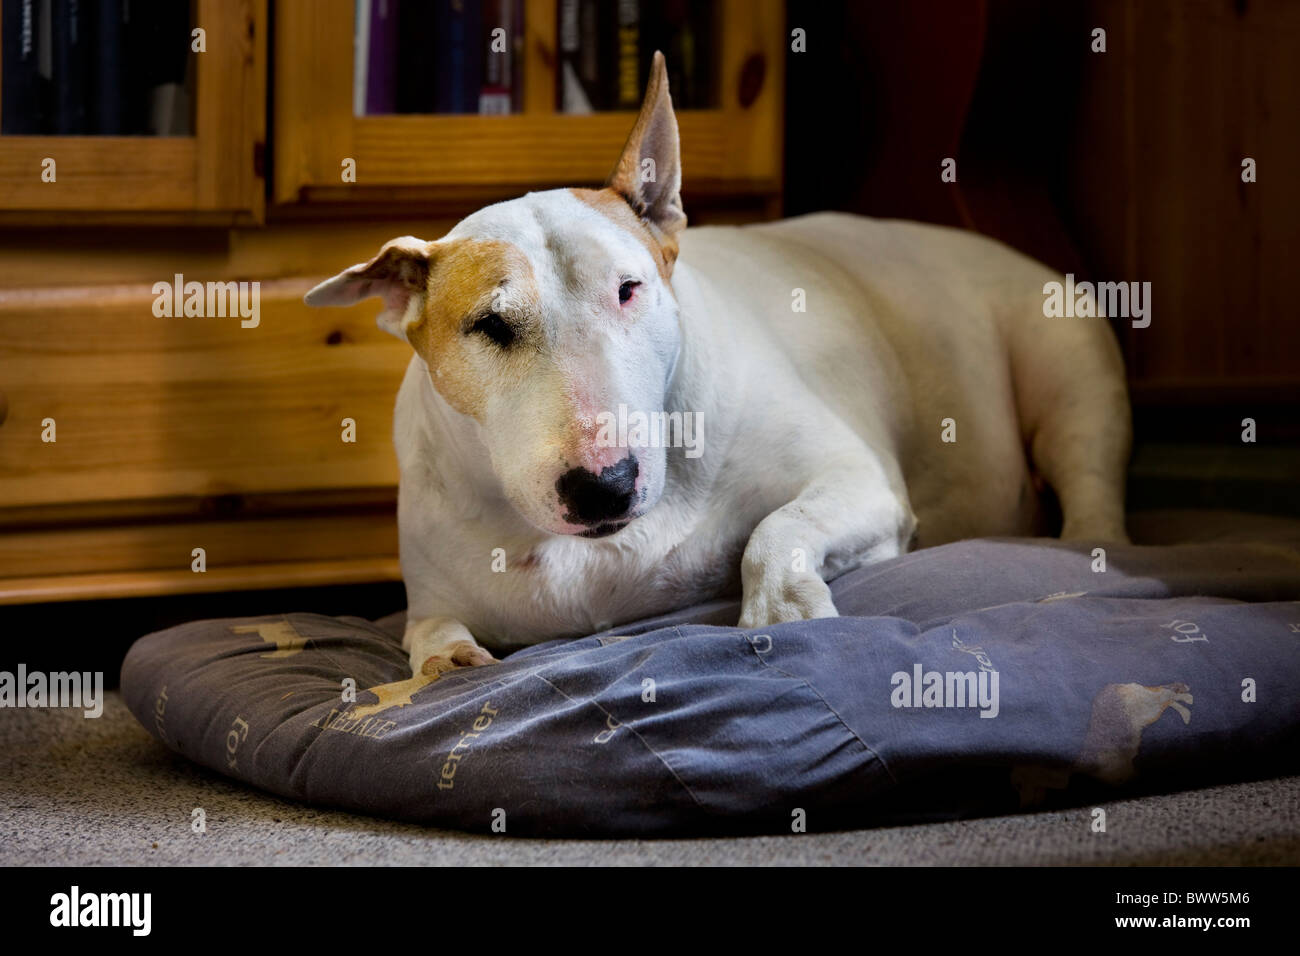 Bull terrier (Canis lupus familiaris) resting on cushion in living room - Stock Image